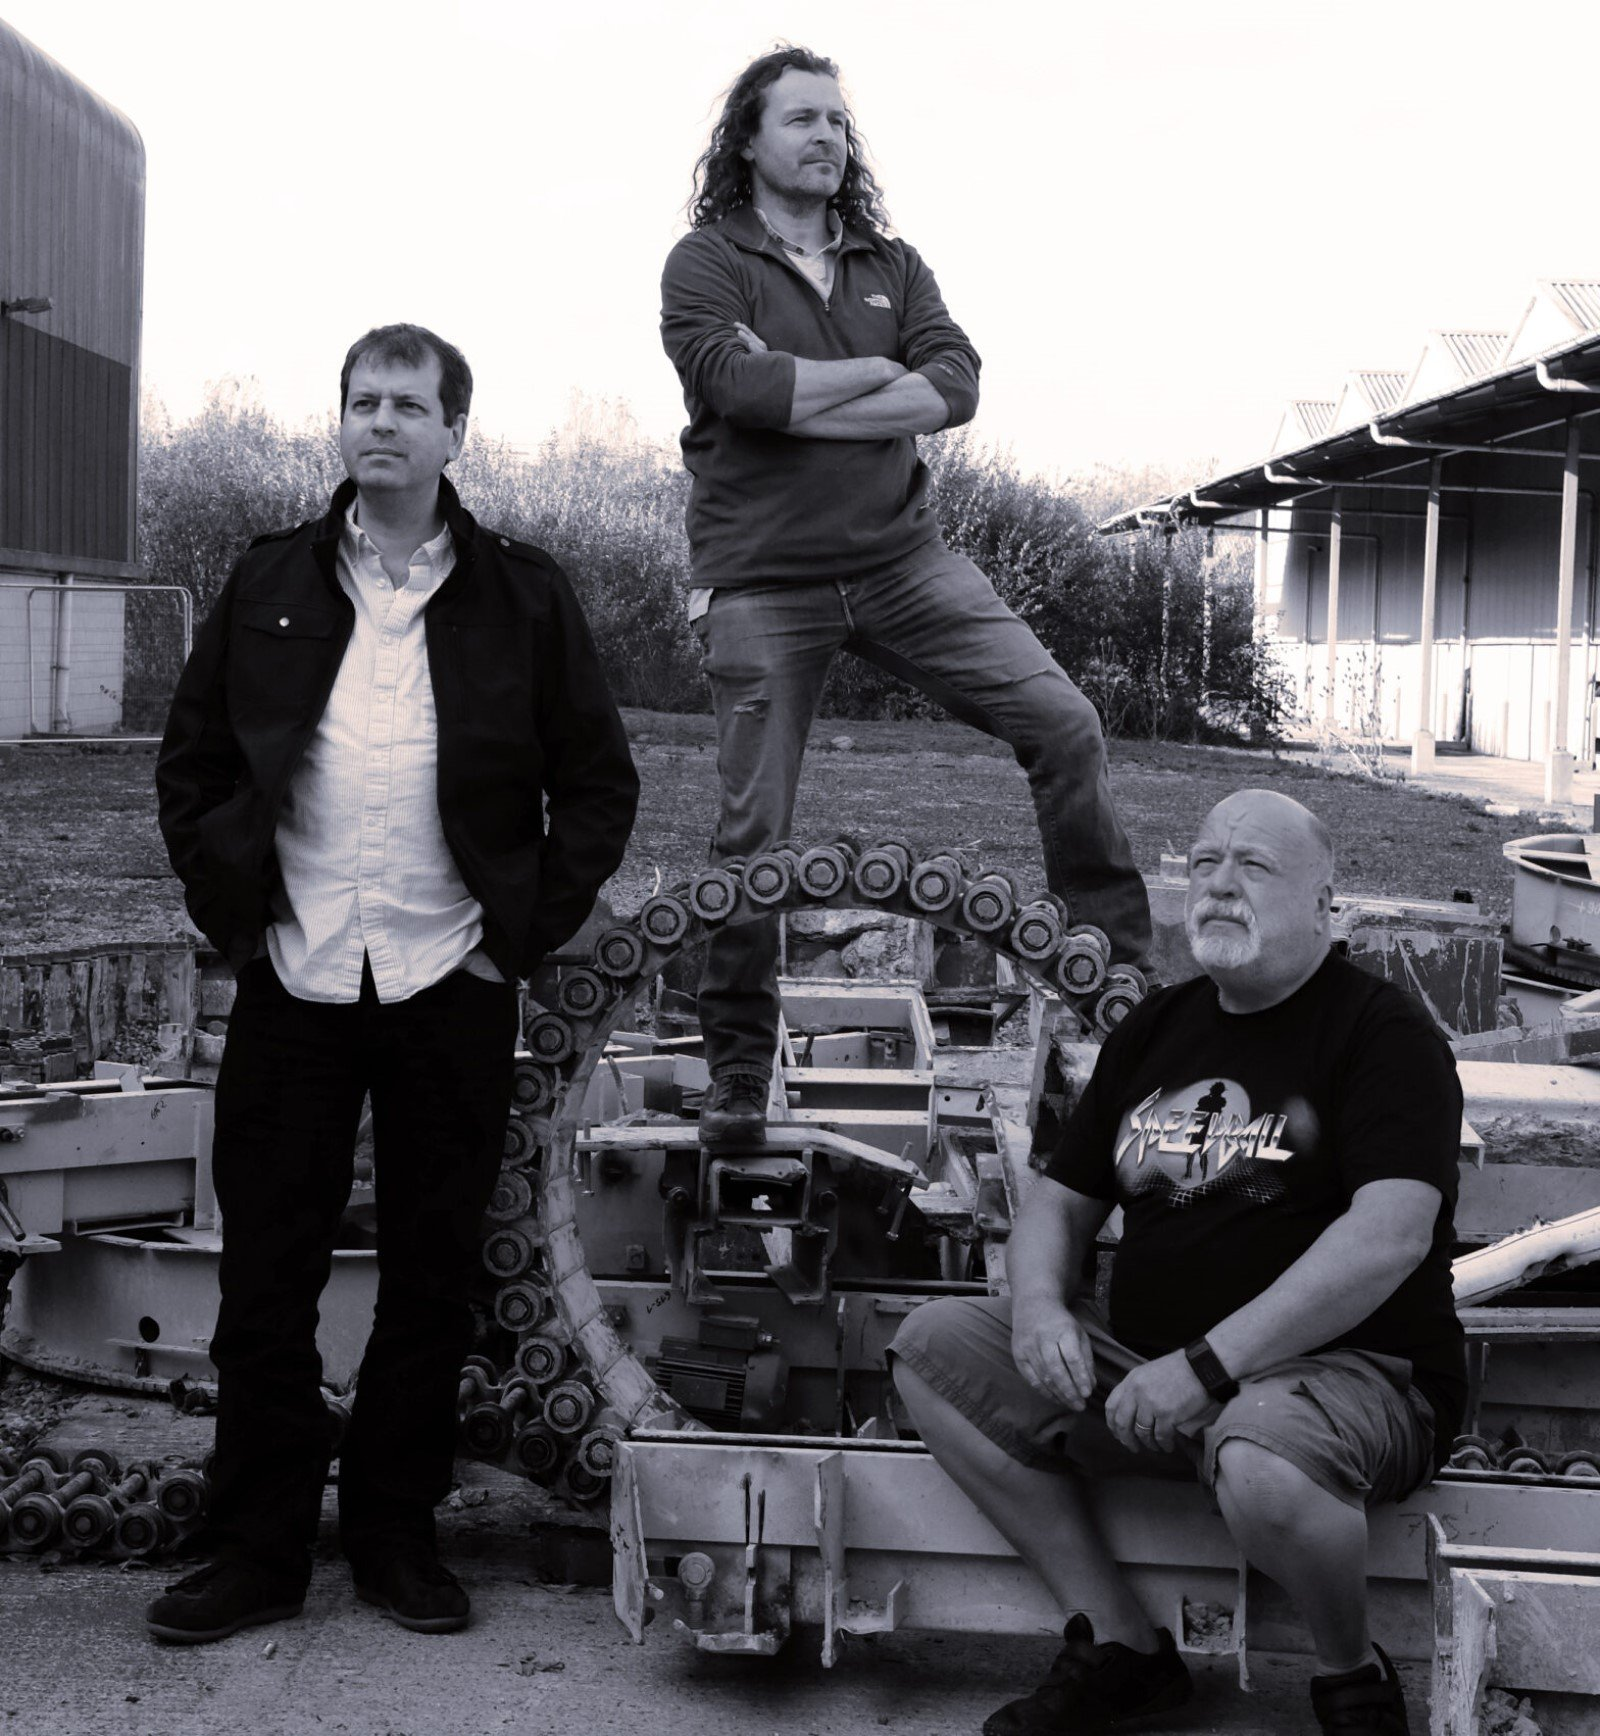 Oxford-based Rebellion acquires The Bitmap Brothers brand and portfolio. Image: Rebellion co-founders Jason & Chris Kingsley with Bitmap Brothers co-founder Mike Montgomery